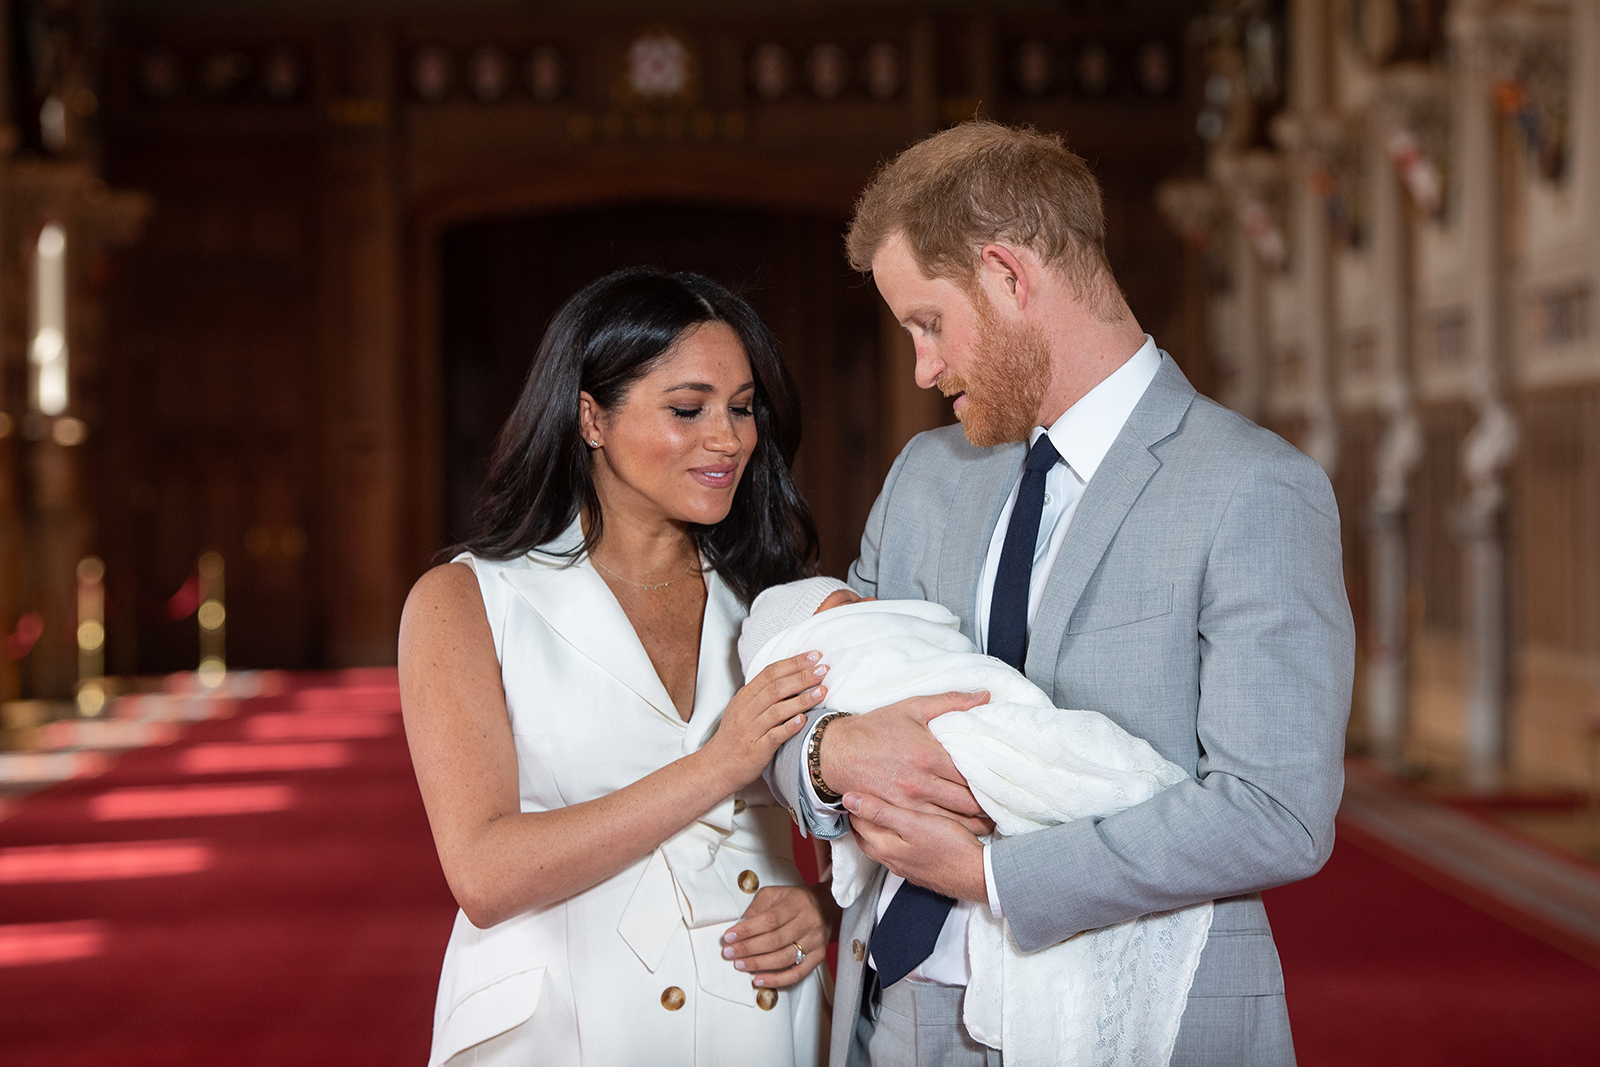 Prince Harry, Duke of Sussex and Meghan, Duchess of Sussex, pose with their newborn son Archie Harrison Mountbatten-Windsor during a photo call in St George's Hall at Windsor Castle on May 8, 2019 in Windsor, England.